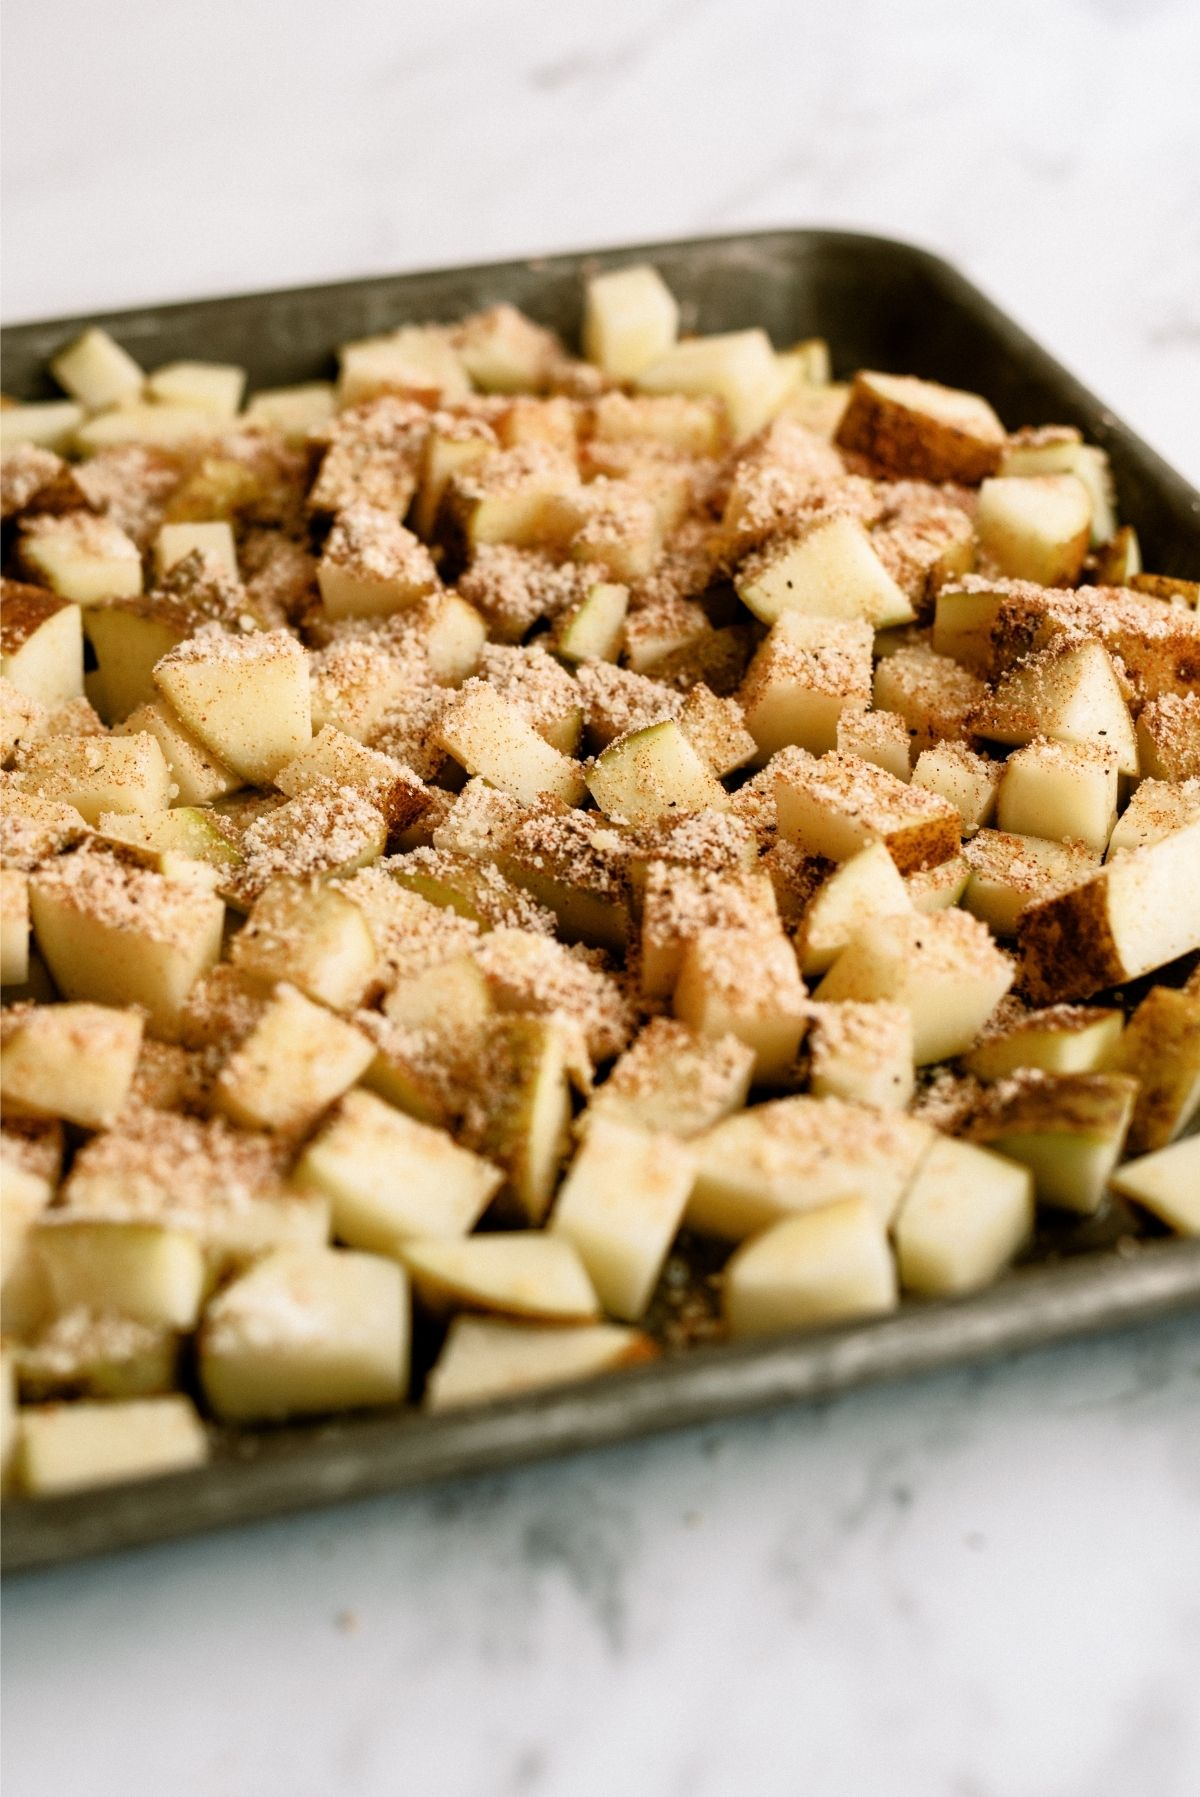 Uncooked Roasted Parmesan Potatoes